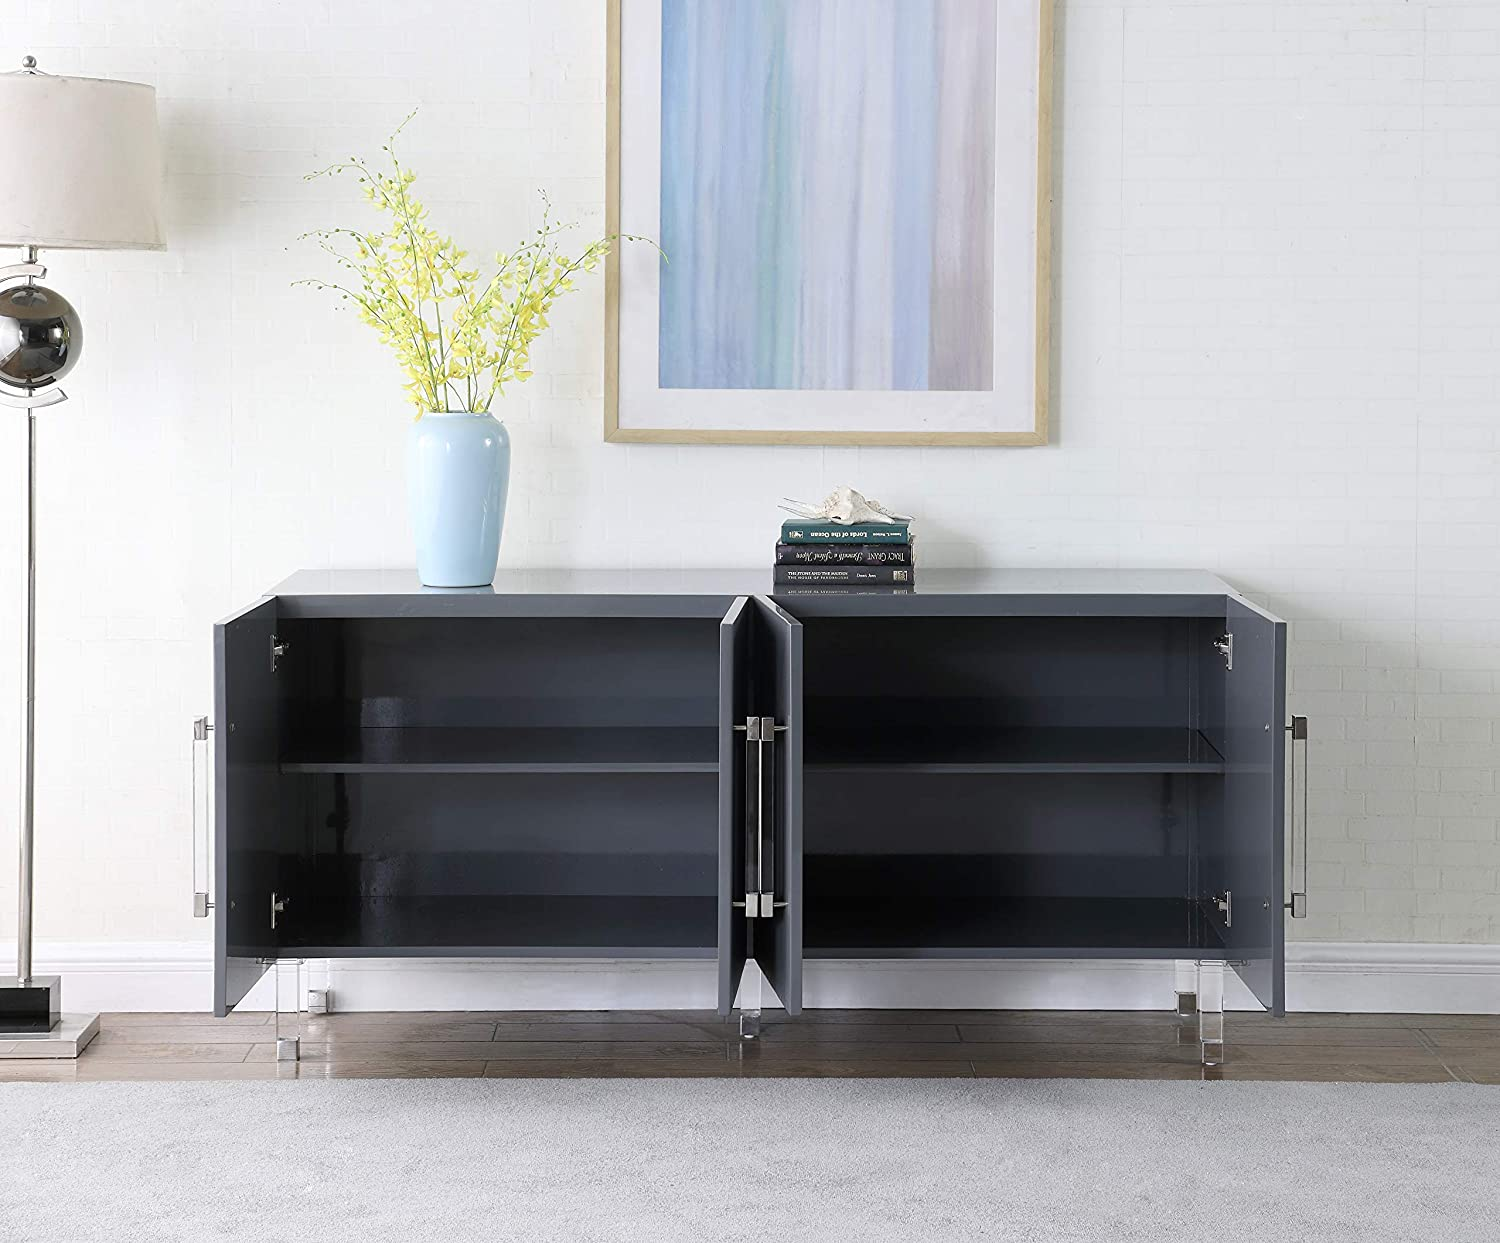 64 W x 18 D x 31 H Contemporary Sideboard//Buffet with Gold Tipped Acrylic Legs and Starburst Design Meridian Furniture Anastasia Collection Modern Grey Lacquer